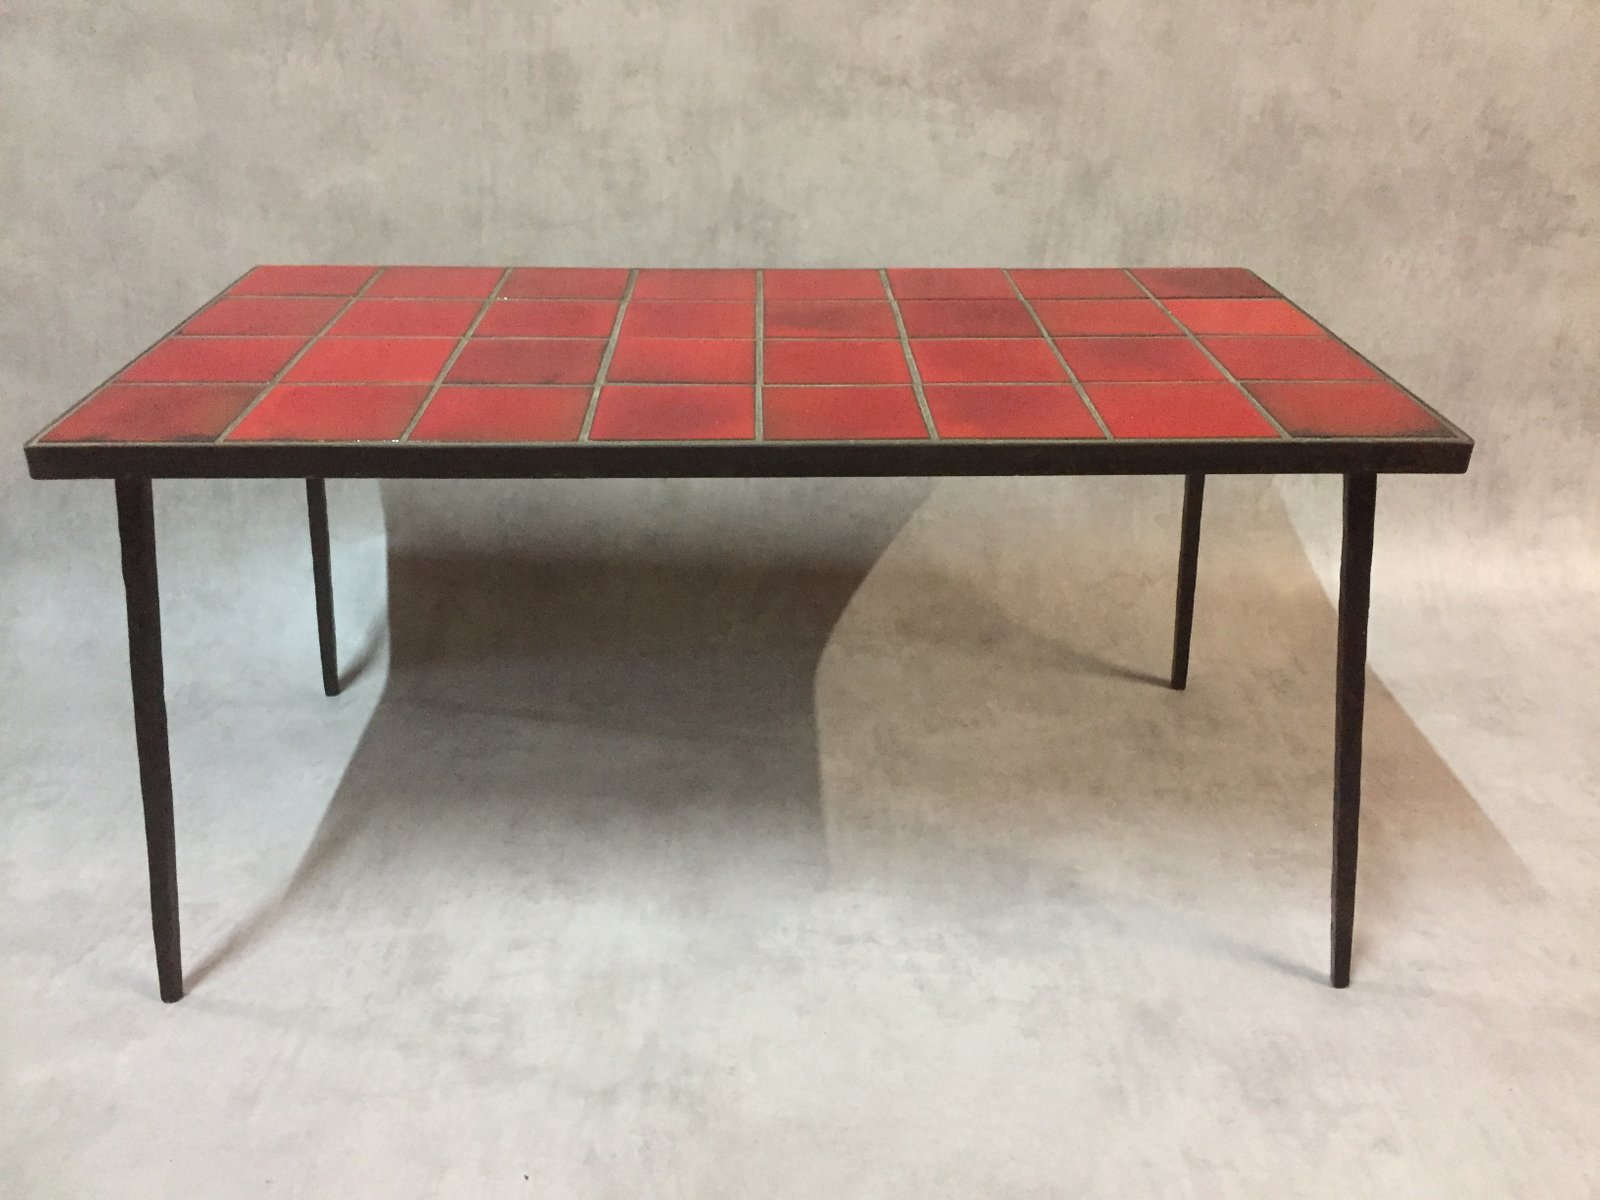 French red ceramic and wrought iron coffee table 1950s